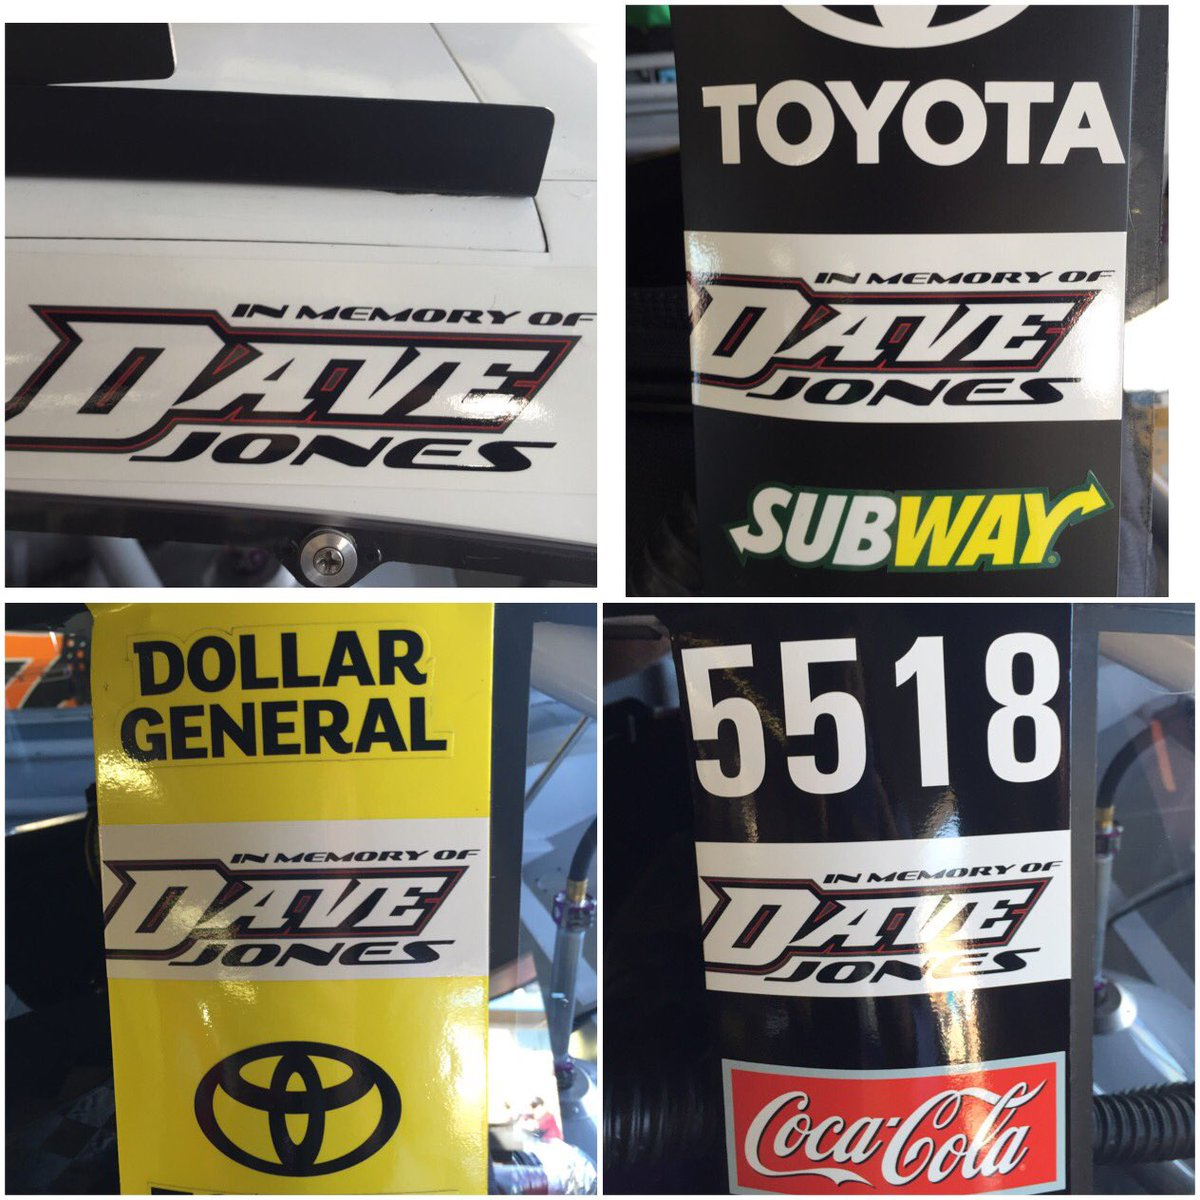 All four @JoeGibbsRacing #Camrys are running decals today @MISpeedway in honor of Dave Jones, @erik_jones' dad. https://t.co/KHYLsZKKfx